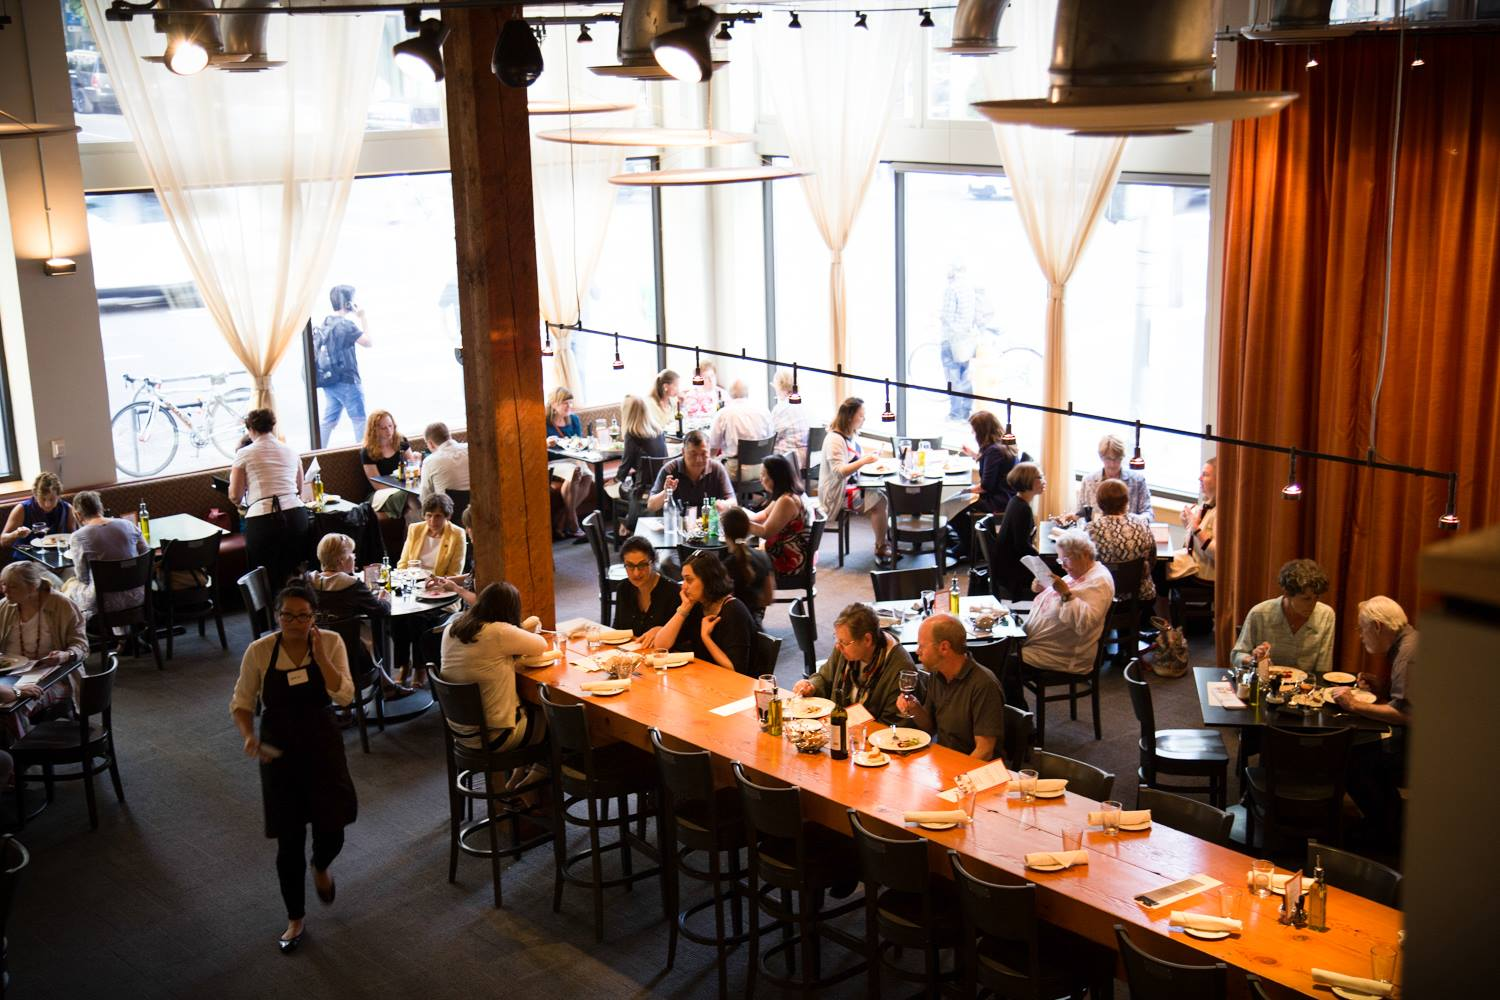 FareStart Restaurant Seattle is one of the best places to eat in Seattle